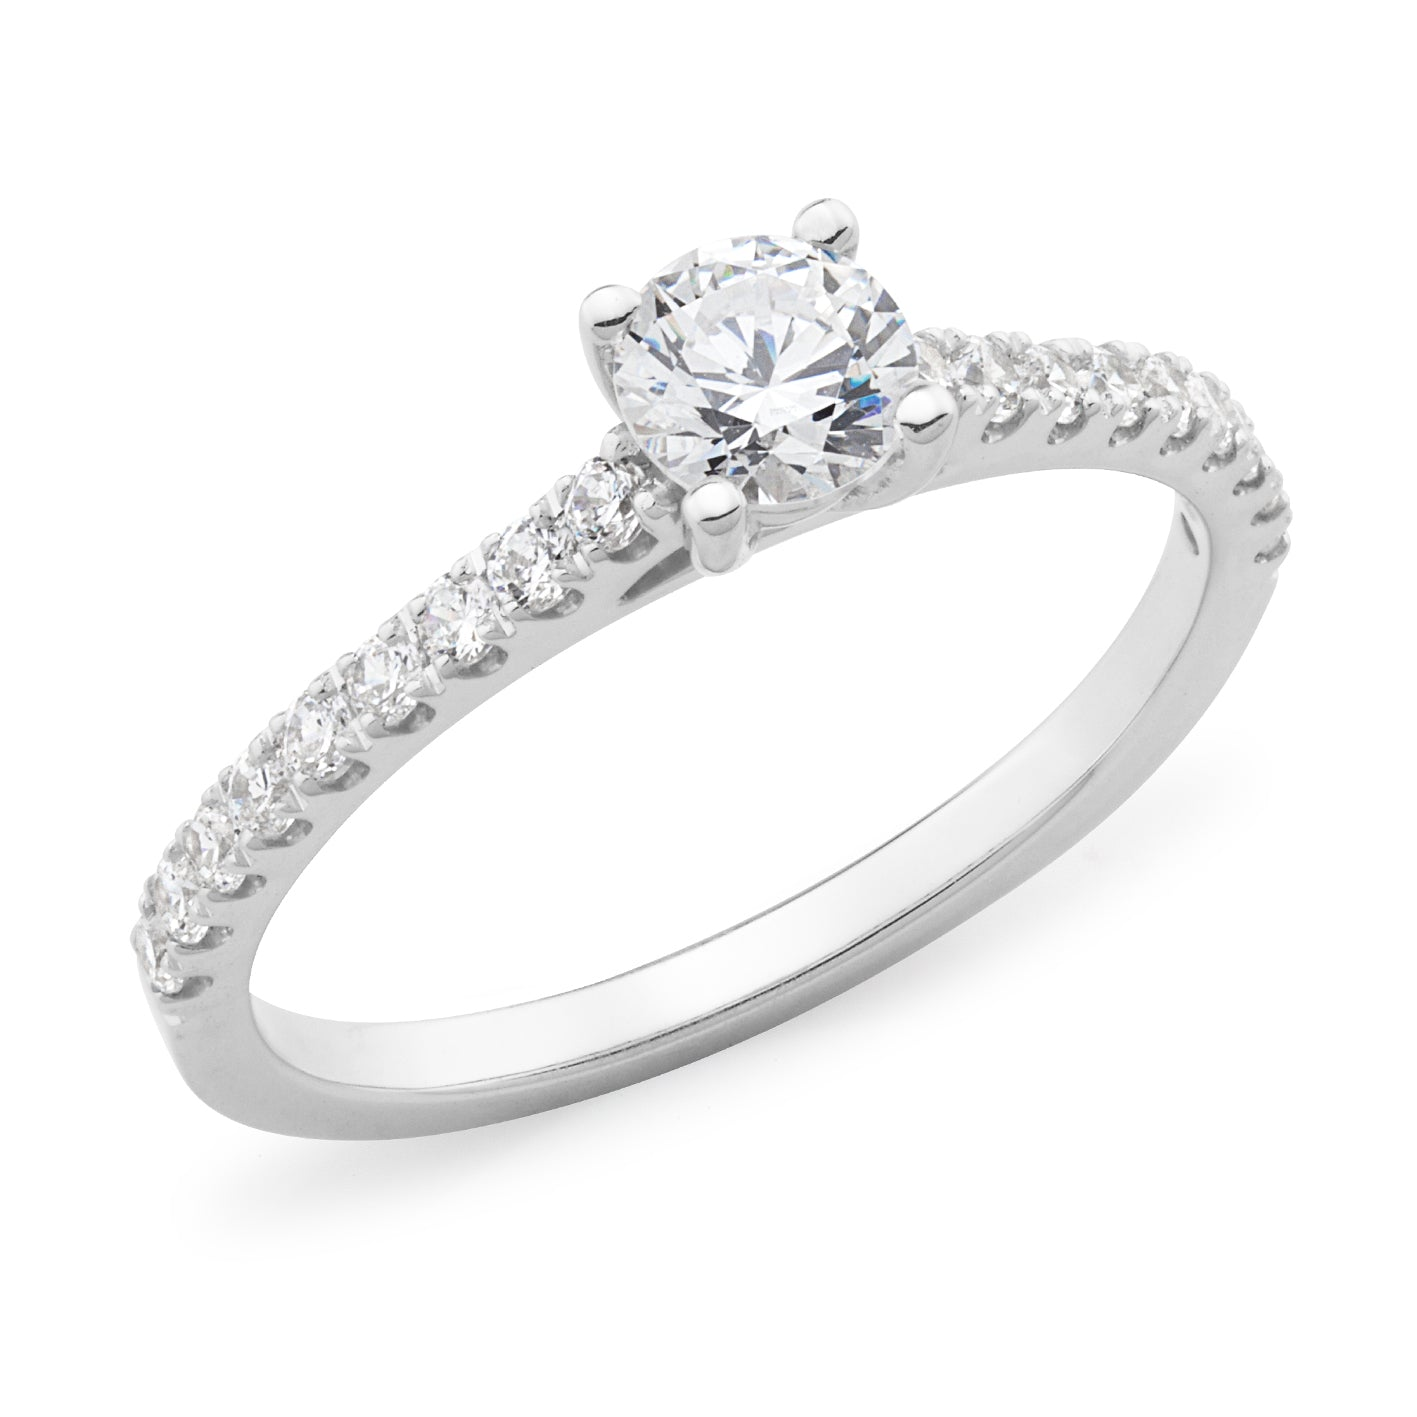 DIAMOND CLAW SET RBC ENGAGEMENT RING IN 18CT WHITE GOLD (0.40CT CENTRE, SI GH) TDW 0.76CT